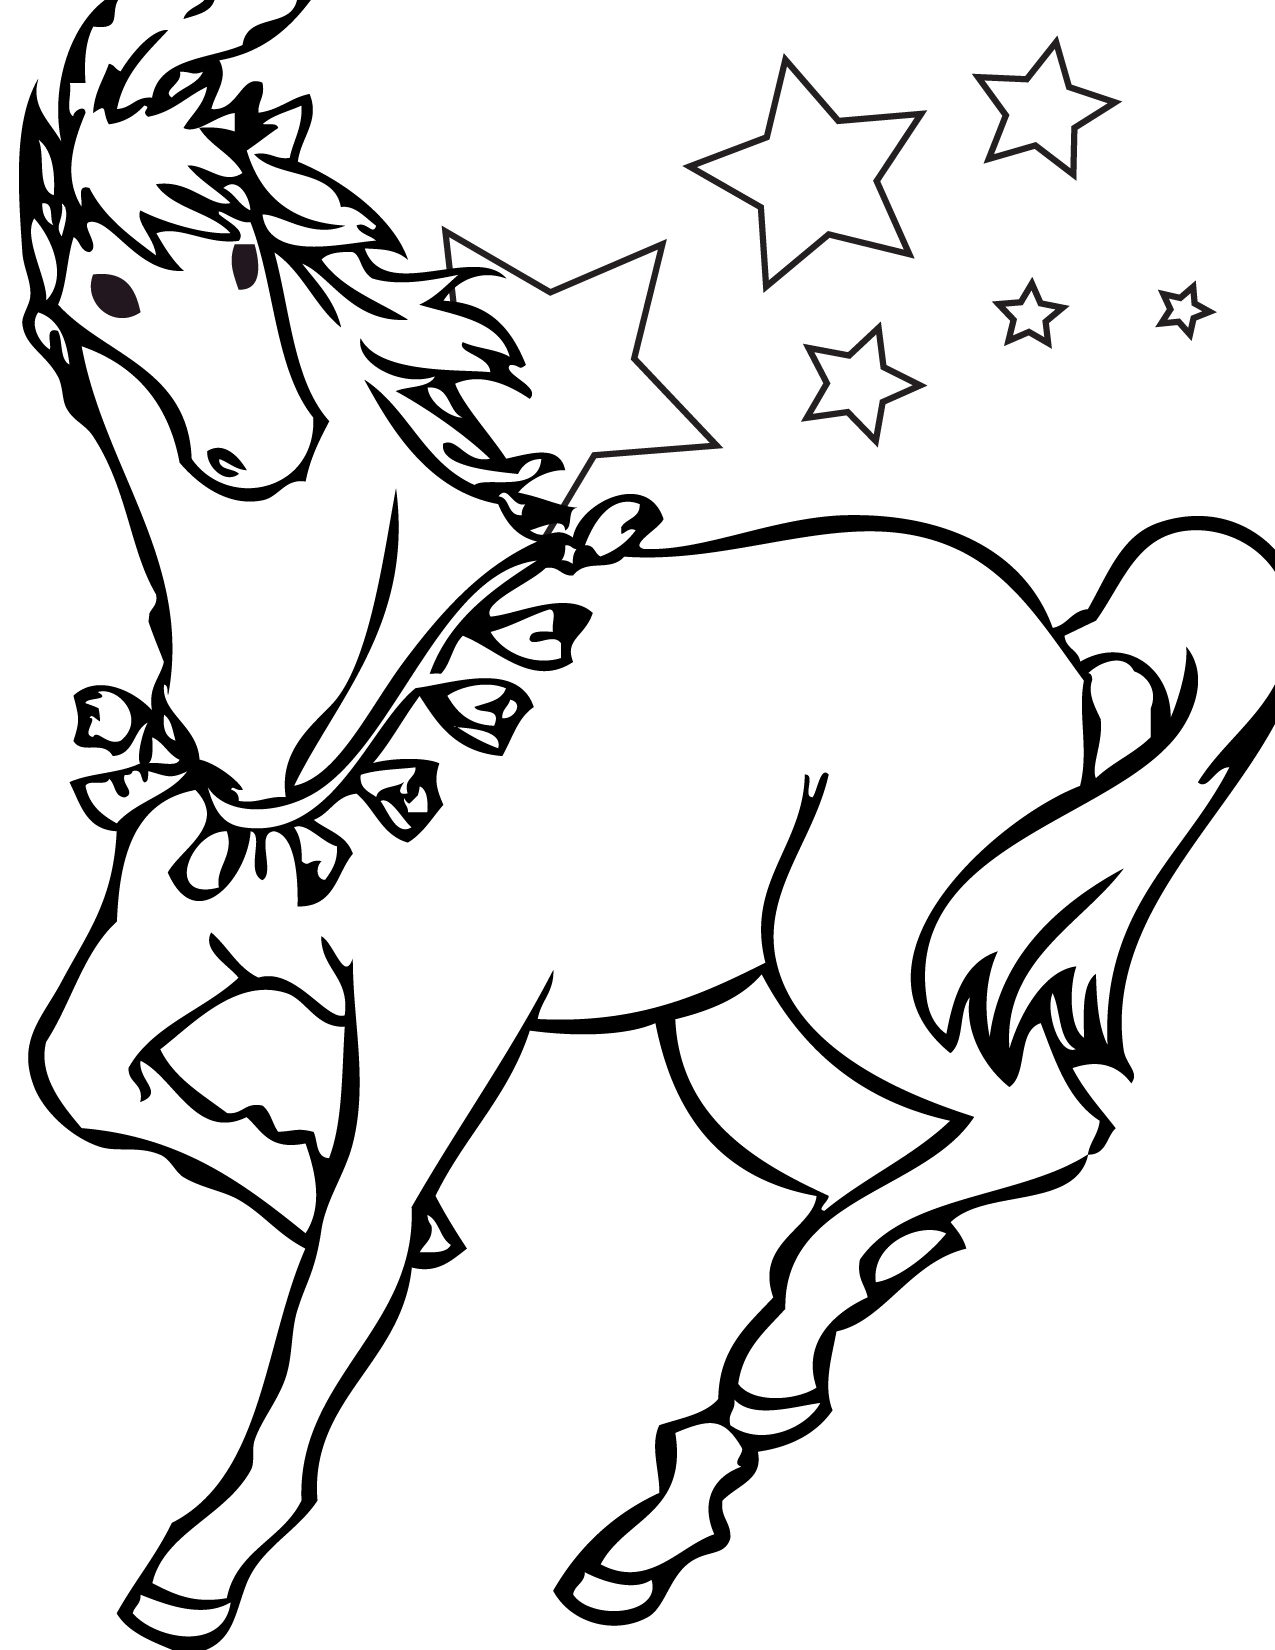 Christmas Horse Coloring Pages With Free Printable For Kids